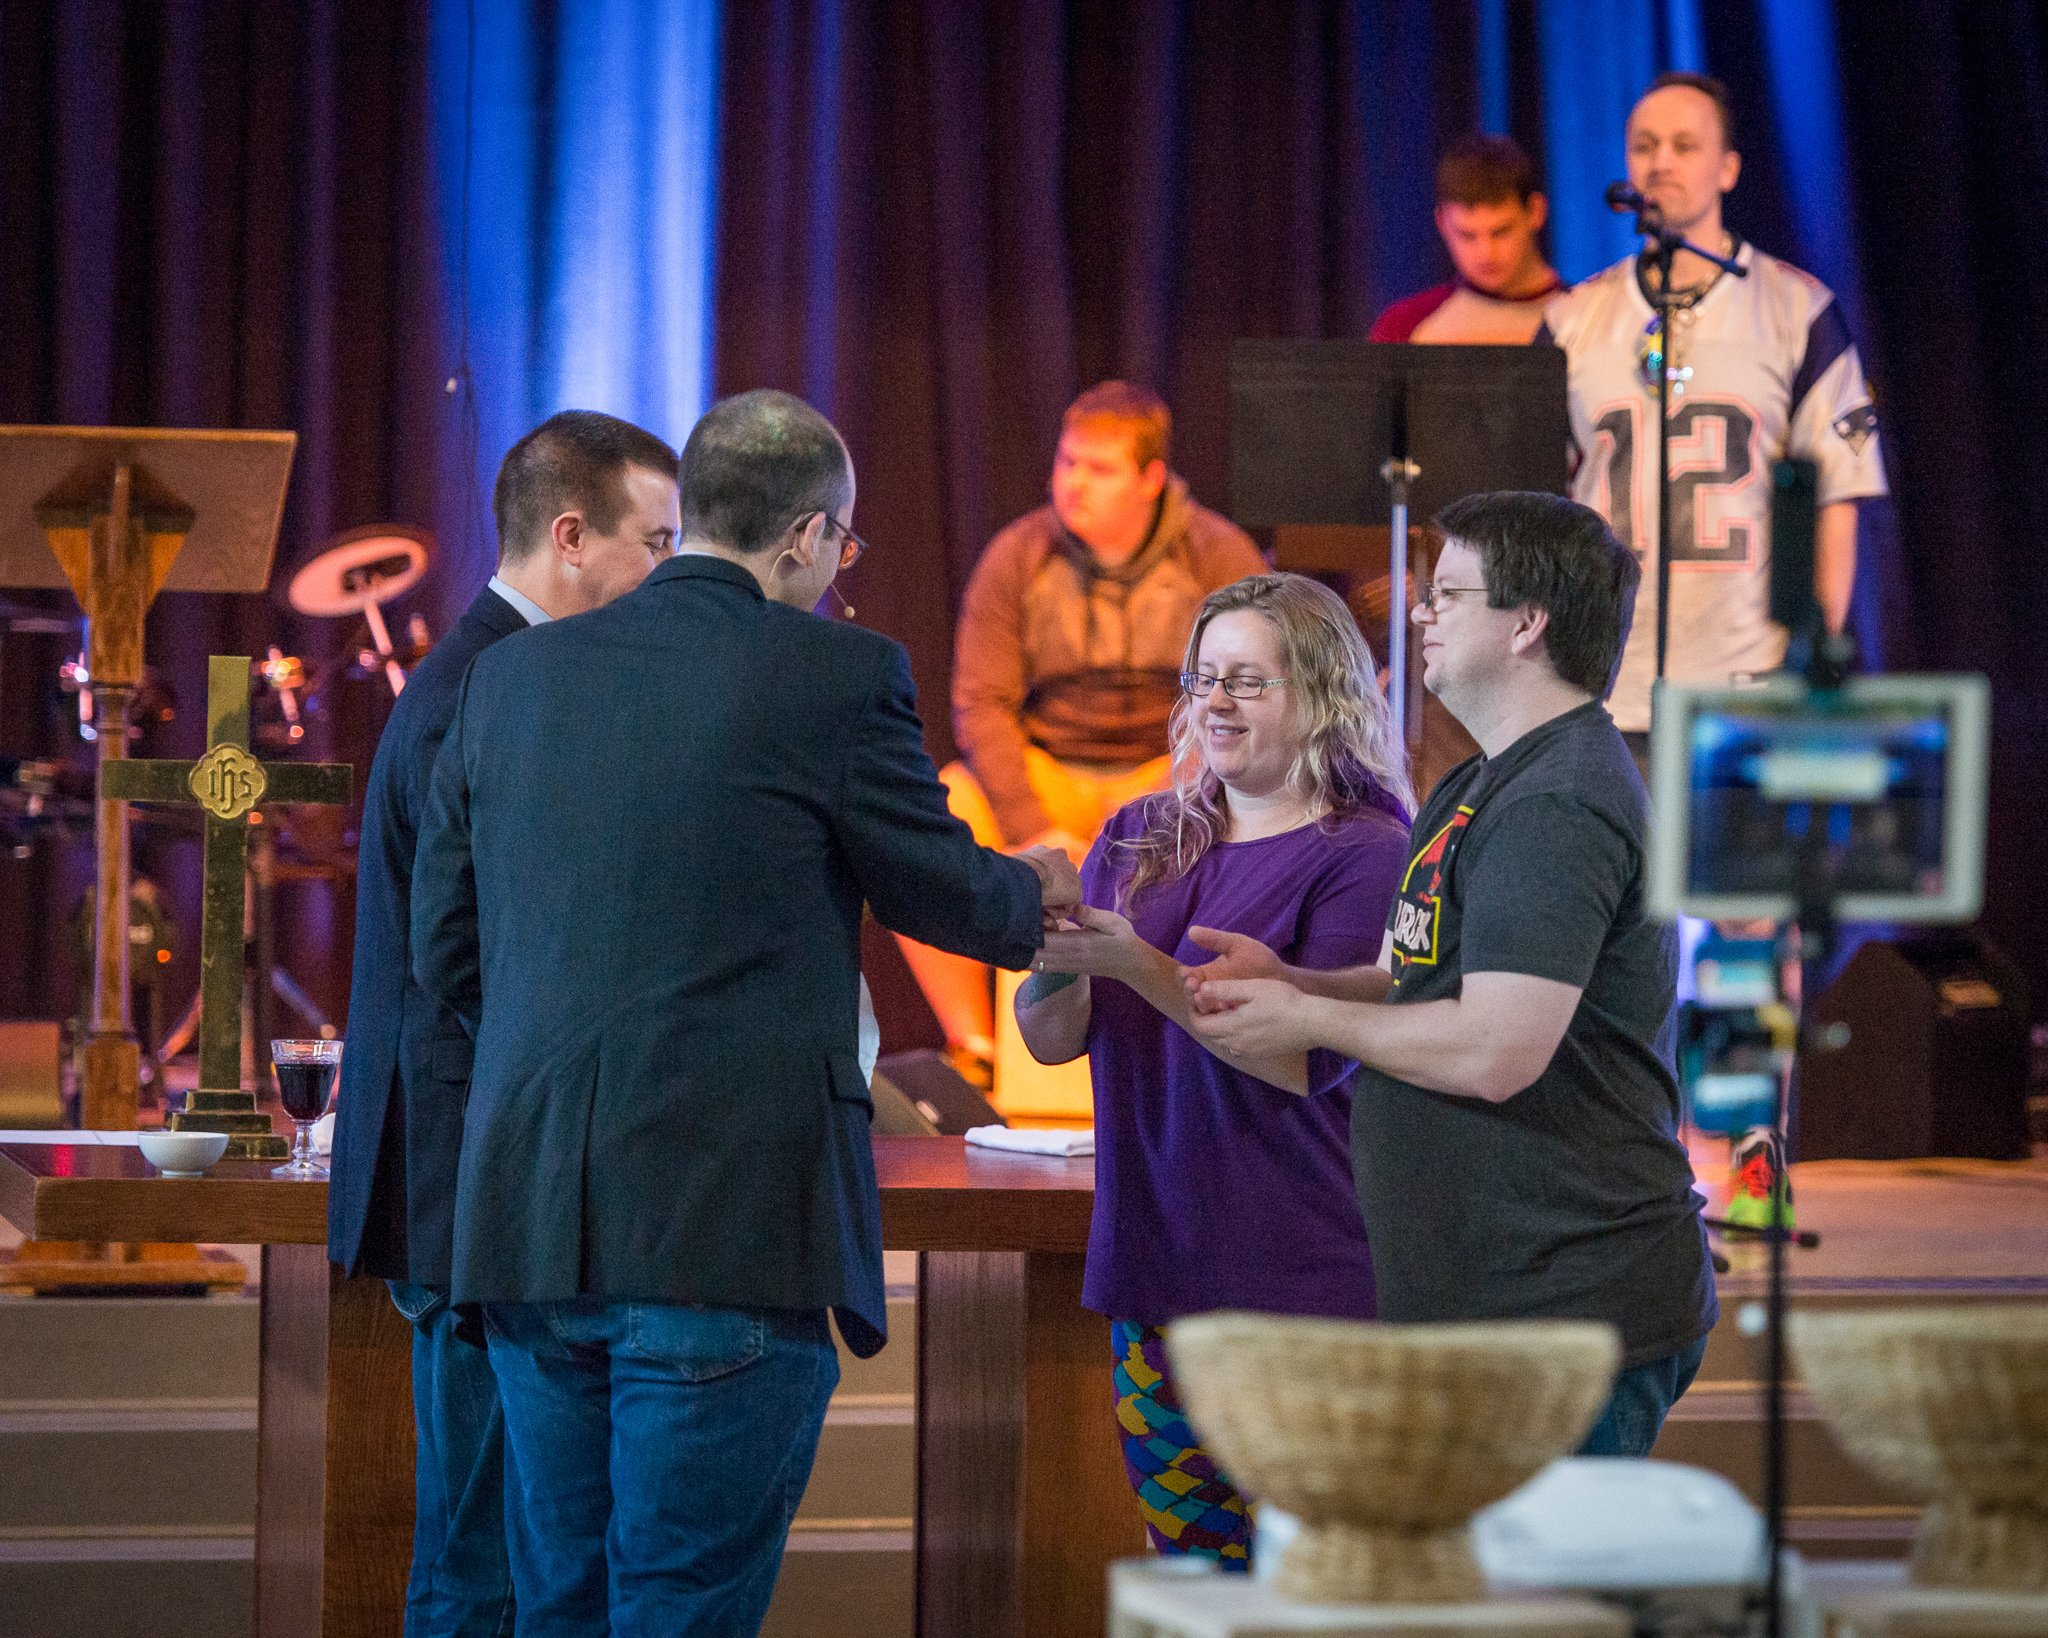 communion being served at worship